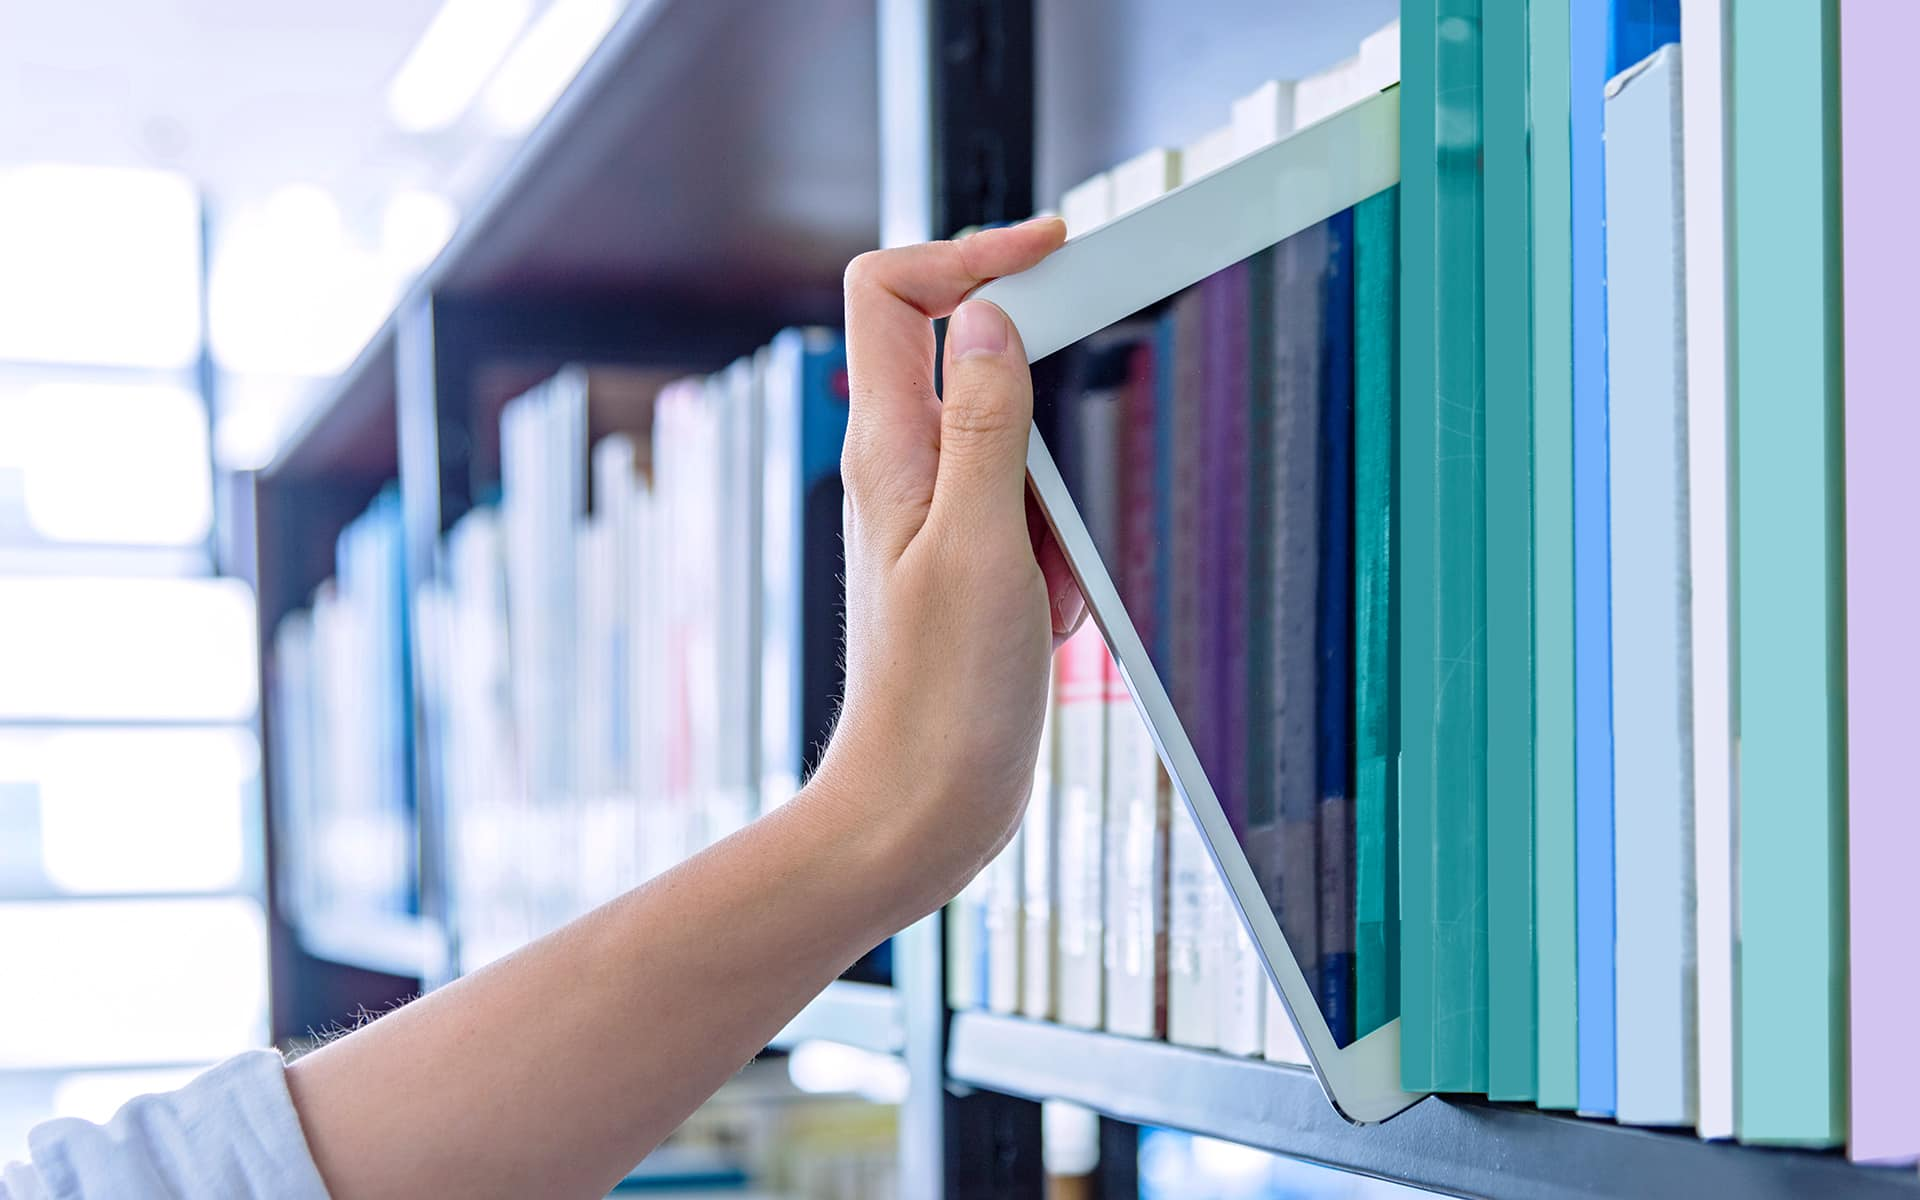 Ipad stored in a book shelve indicating to work paperless